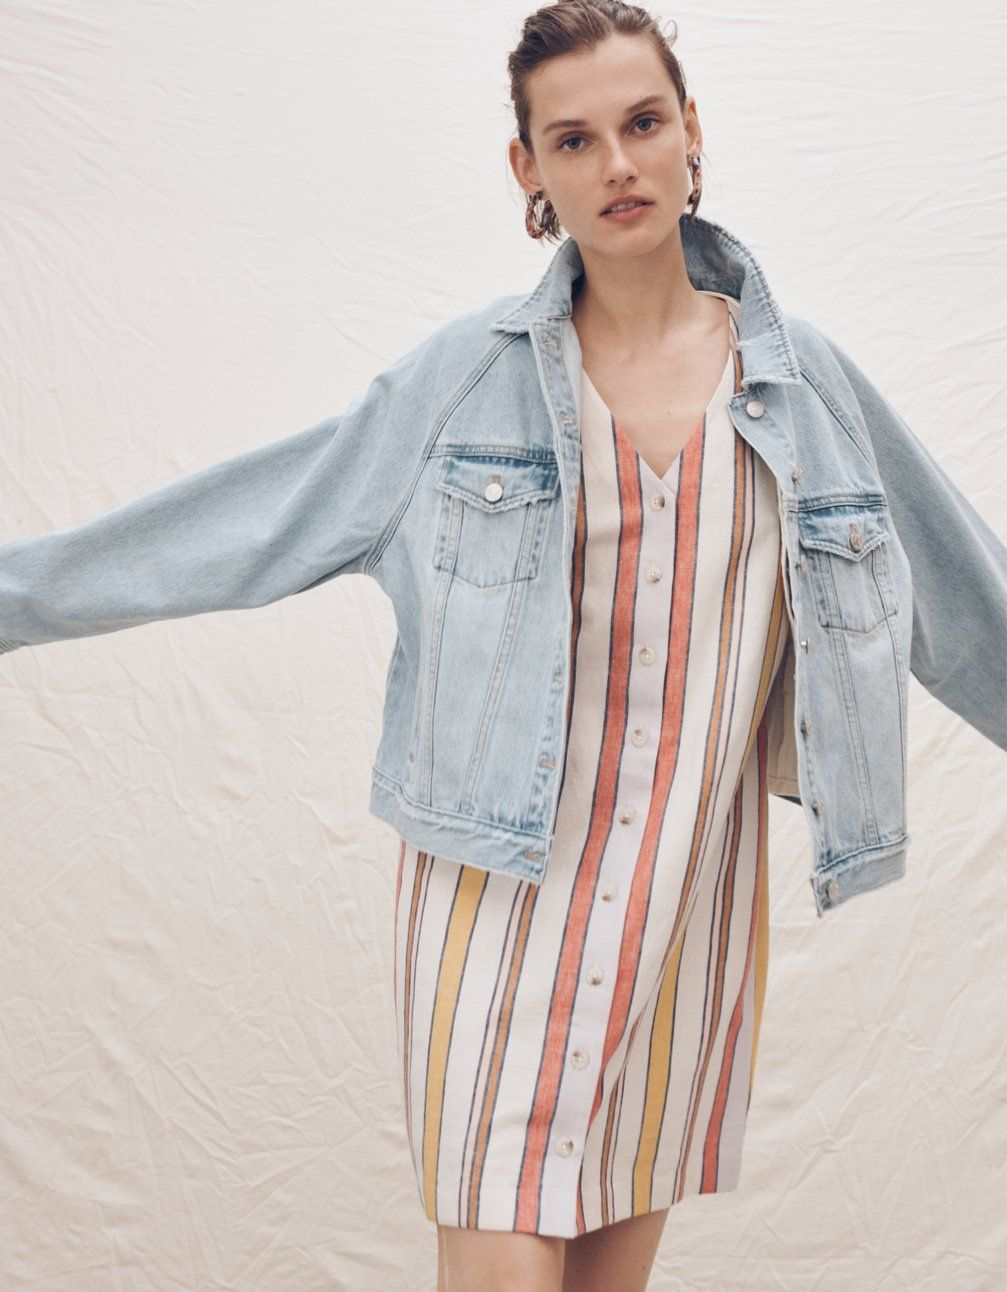 c0d22cceb36a4 madewell raglan oversized jean jacket worn with button-front easy dress.